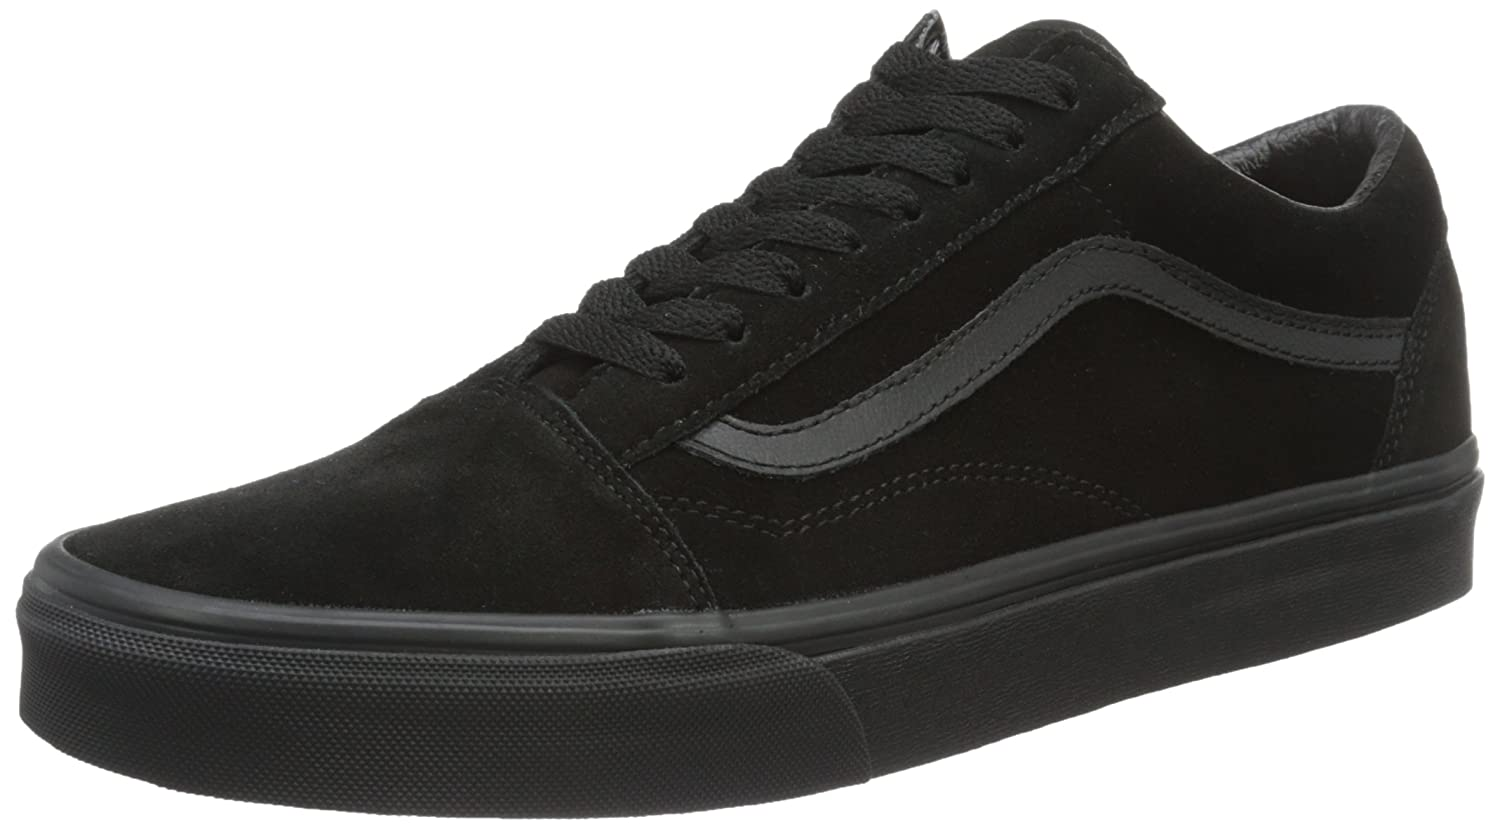 Vans Unisex Old Skool Classic Skate Shoes B01N8UF682 8 M US|Black/Black/Black